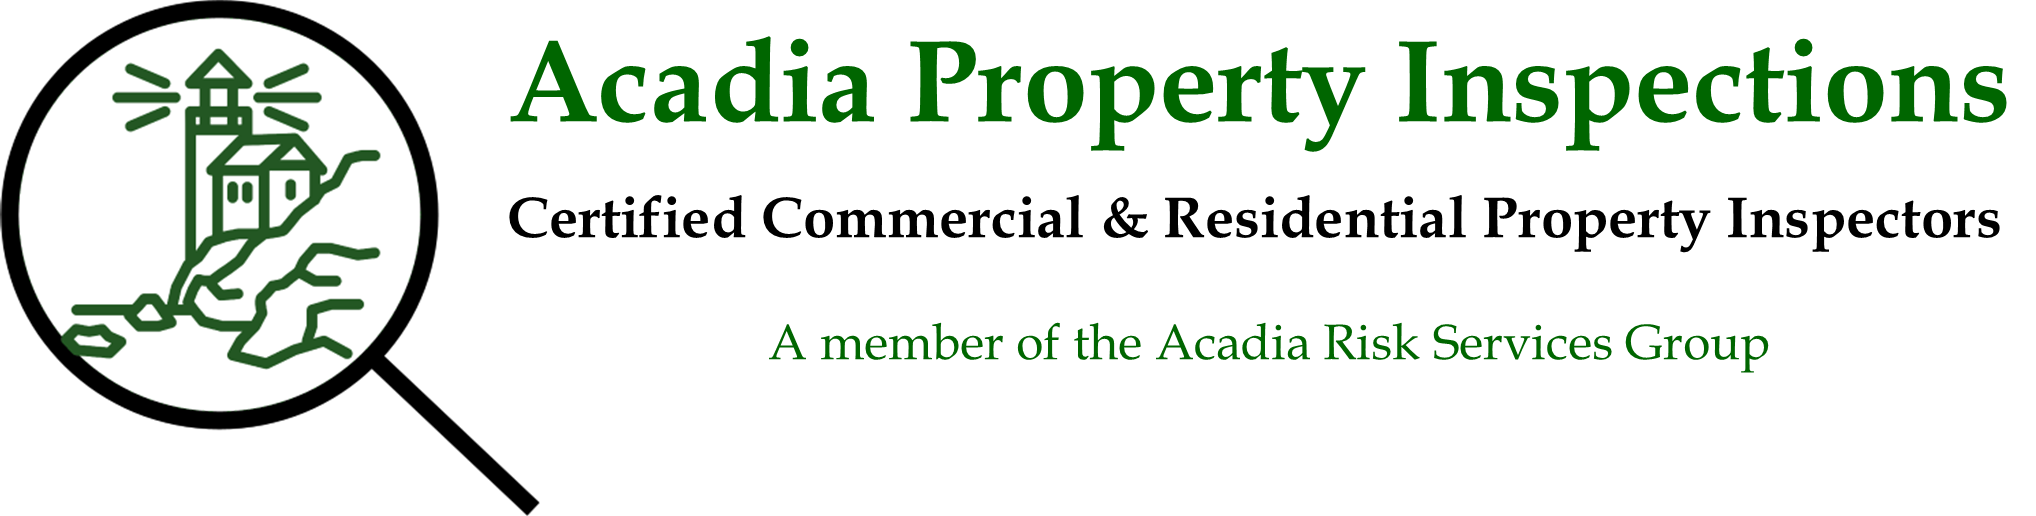 Acadia Property Inspections